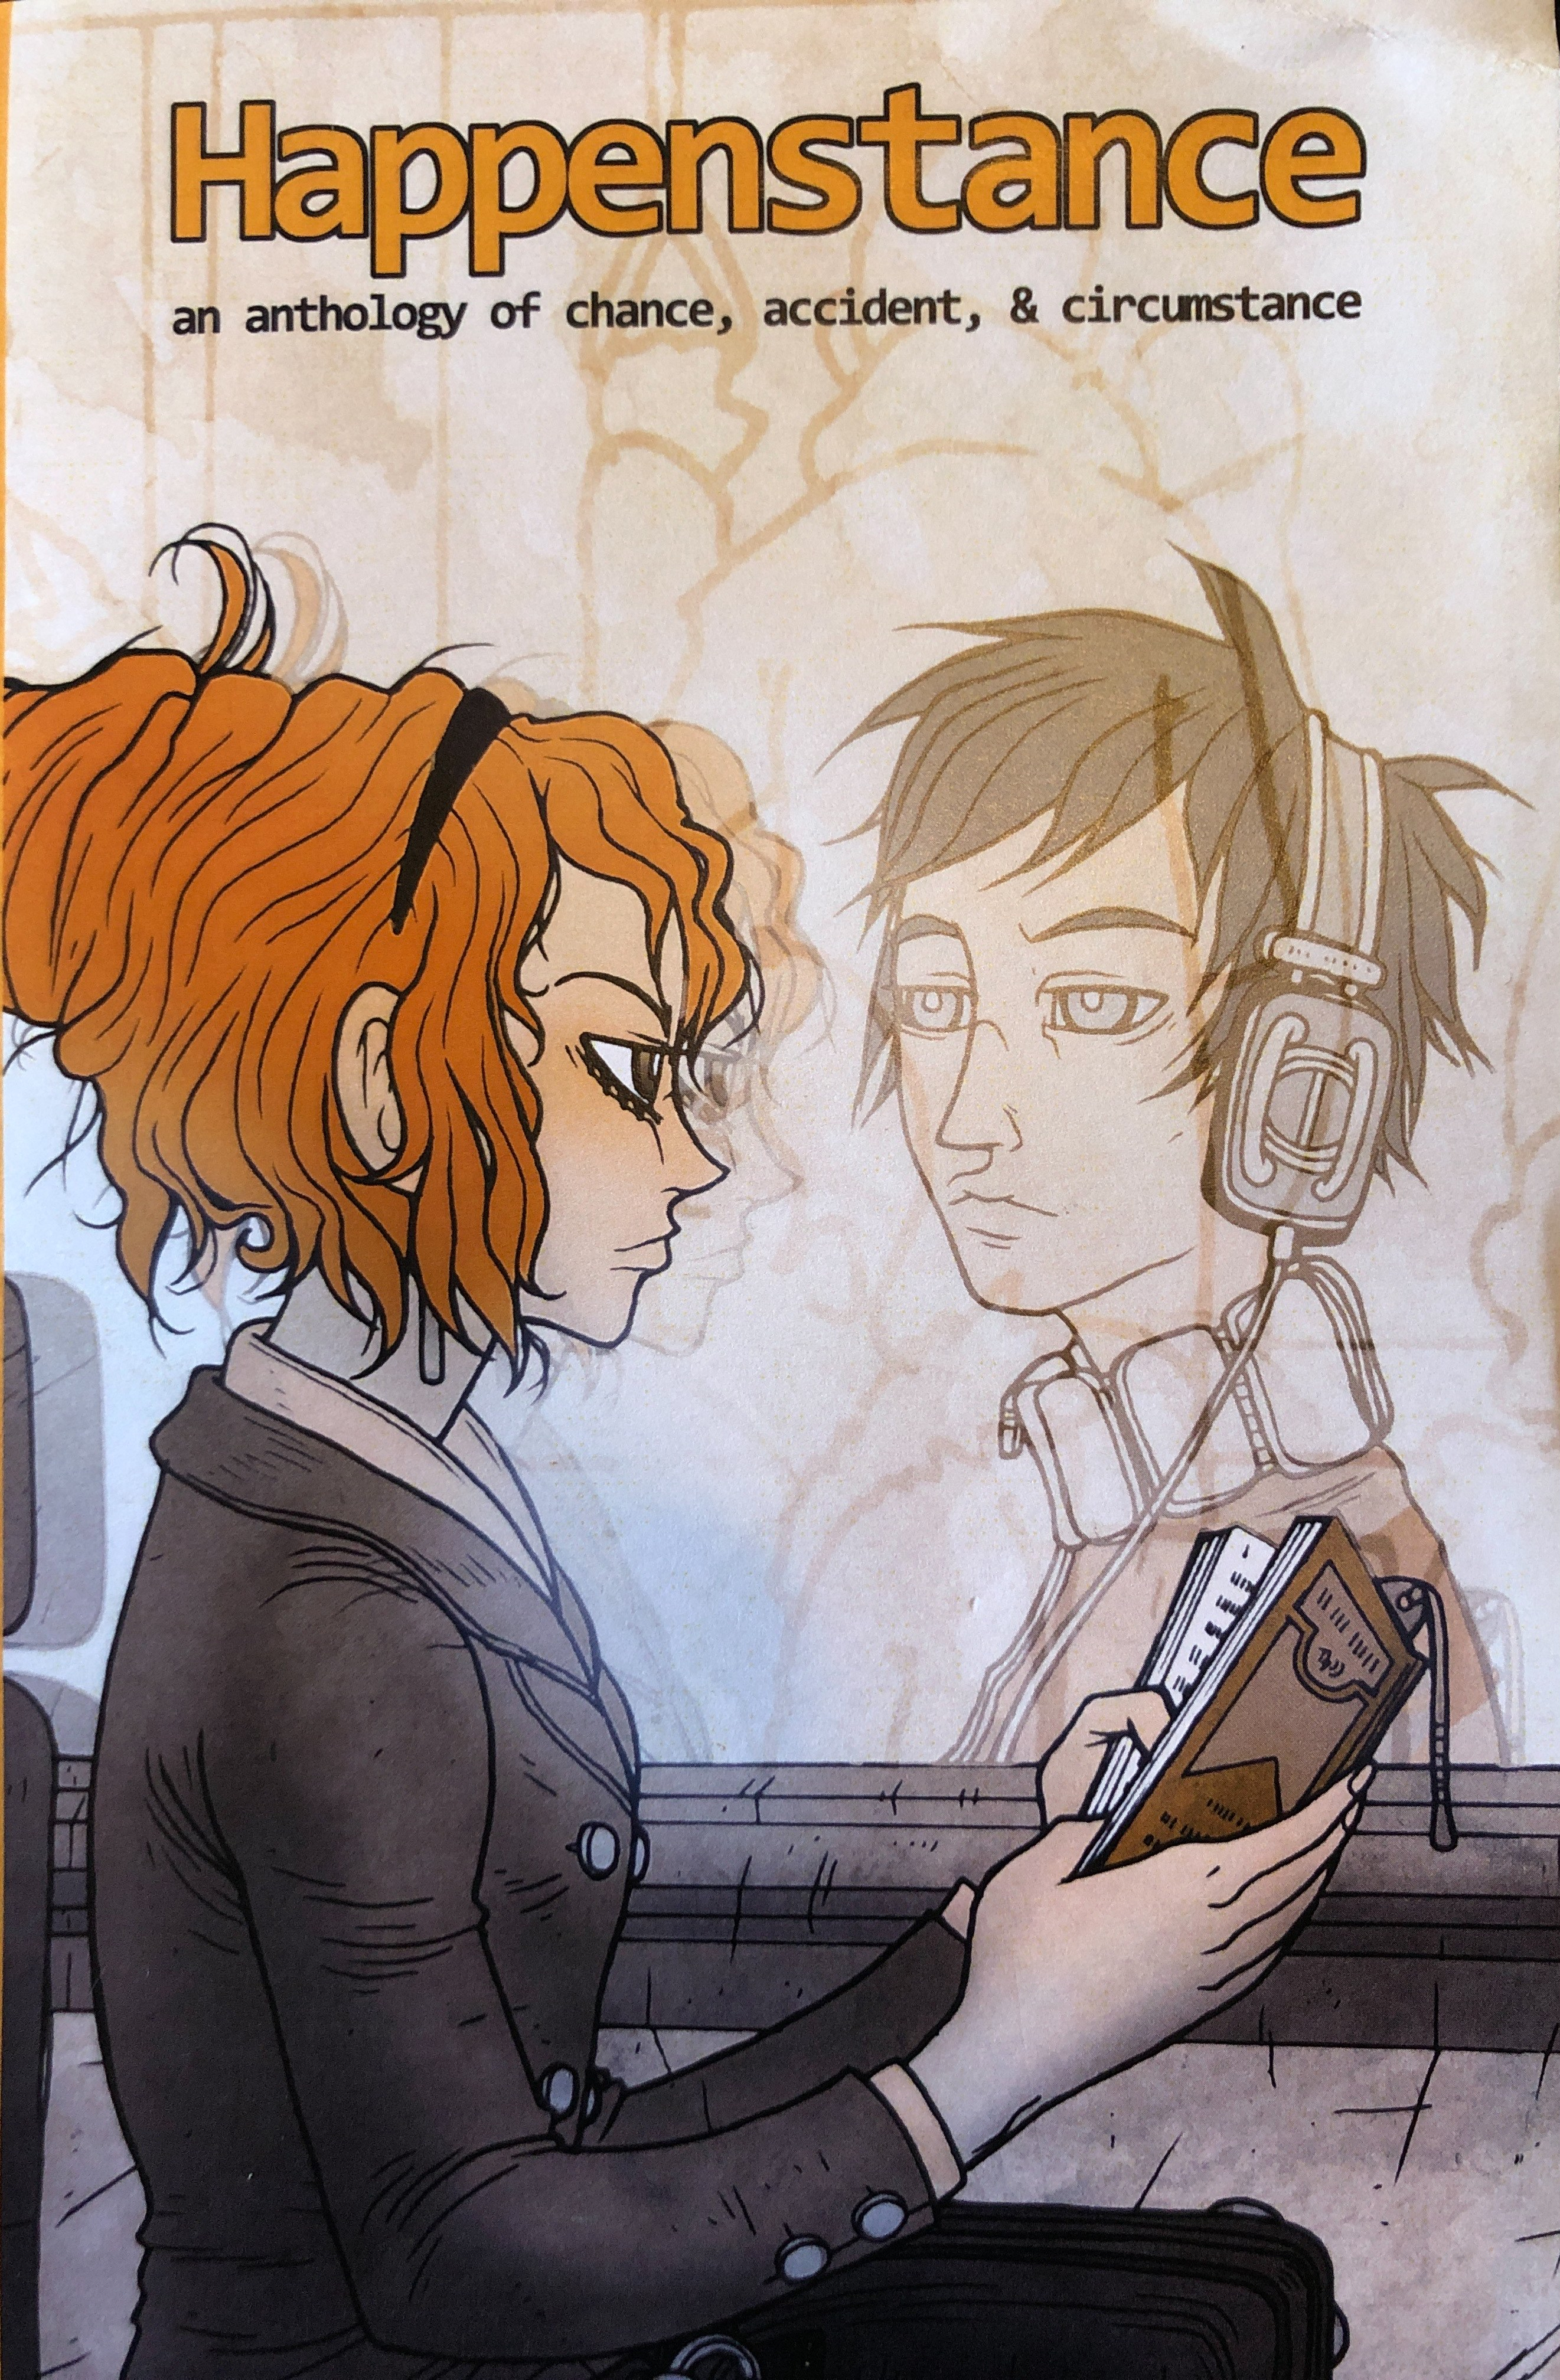 Coloured illustration of a girl in a bus looking at a reflection of a man through her window.